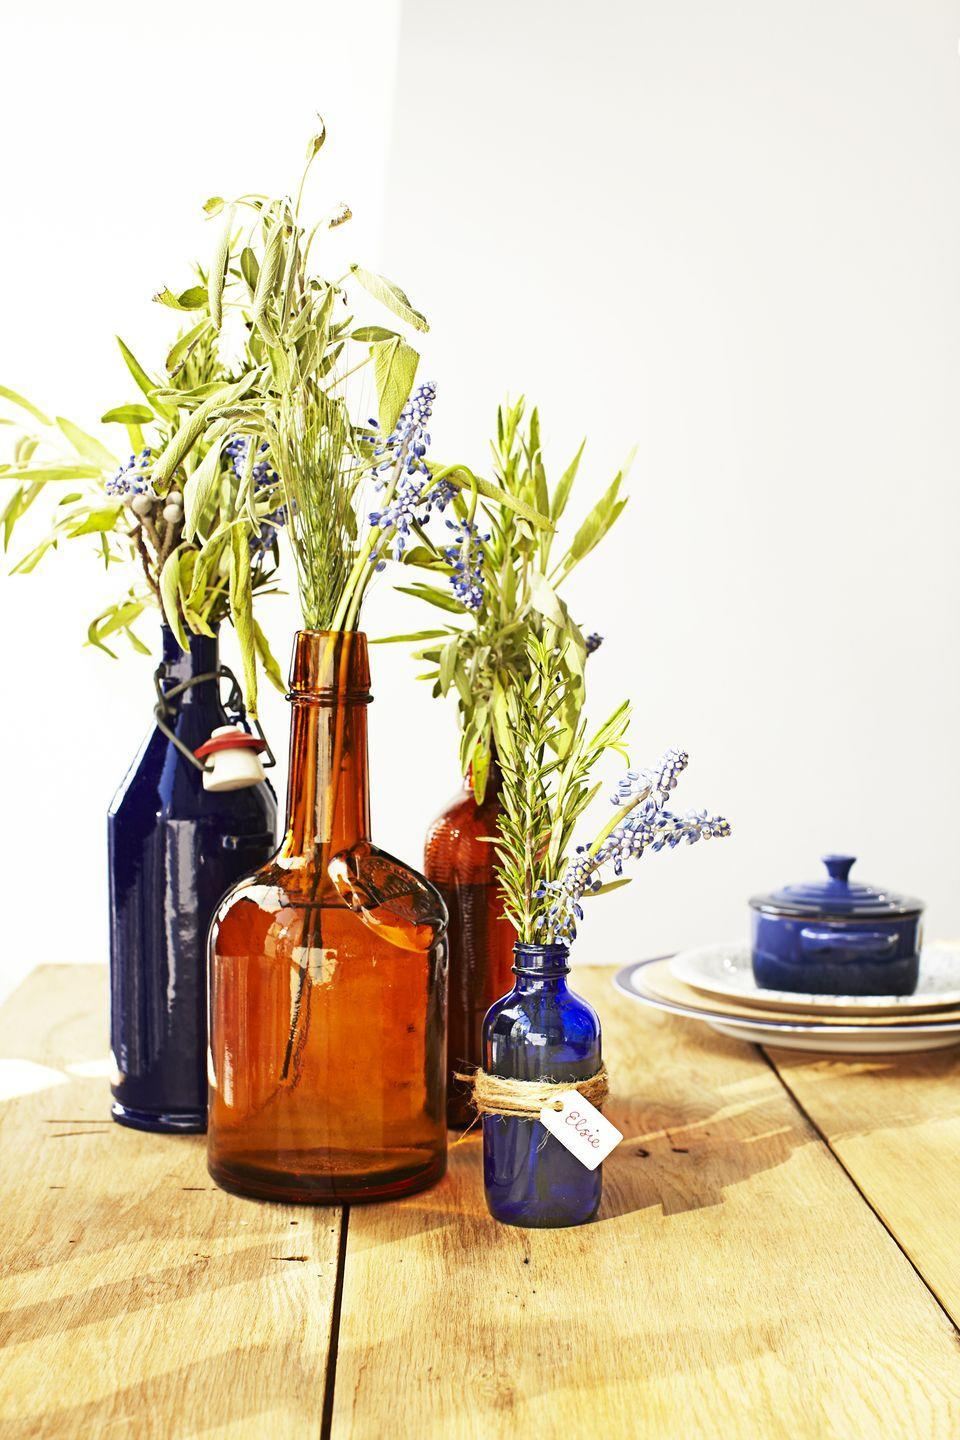 "<p>Scour your local flea market for blue and amber glass vessels. Fill some with flowers or herbs — leftover sage from the kitchen fits the theme — and use the smaller ones as place cards.</p><p><a class=""link rapid-noclick-resp"" href=""https://www.amazon.com/Couronne-Company-B6533T15-Apothecary-Recycled/dp/B06Y63M953?tag=syn-yahoo-20&ascsubtag=%5Bartid%7C10055.g.1681%5Bsrc%7Cyahoo-us"" rel=""nofollow noopener"" target=""_blank"" data-ylk=""slk:SHOP GLASS BOTTLES"">SHOP GLASS BOTTLES</a></p>"